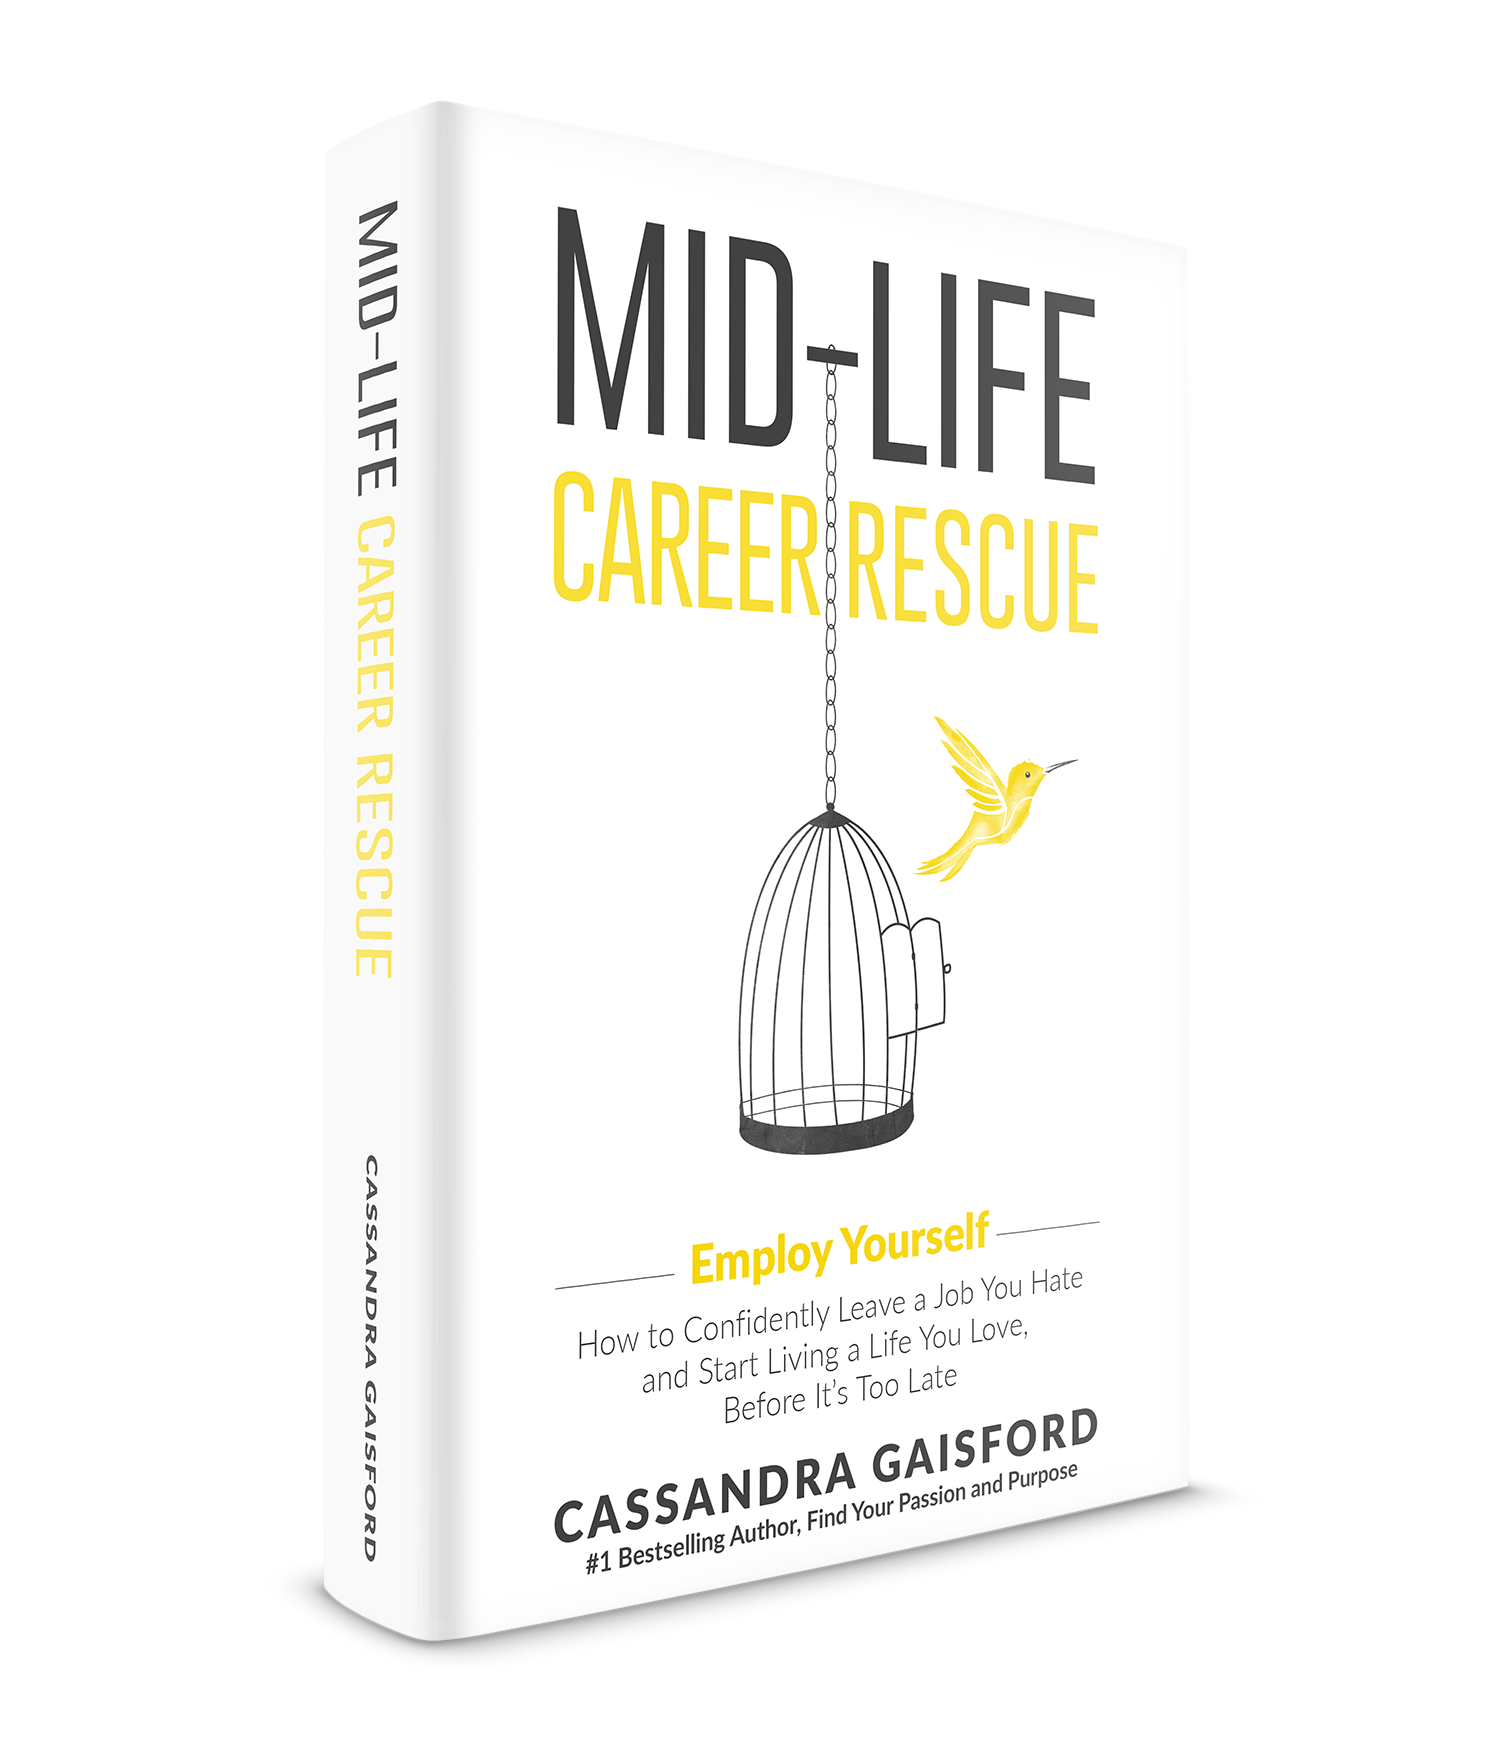 Career happiness cassandra gaisford this is an edited extract from midlife career rescue employ yourself how to confidently leave a job you hate and start living a life you love ccuart Choice Image